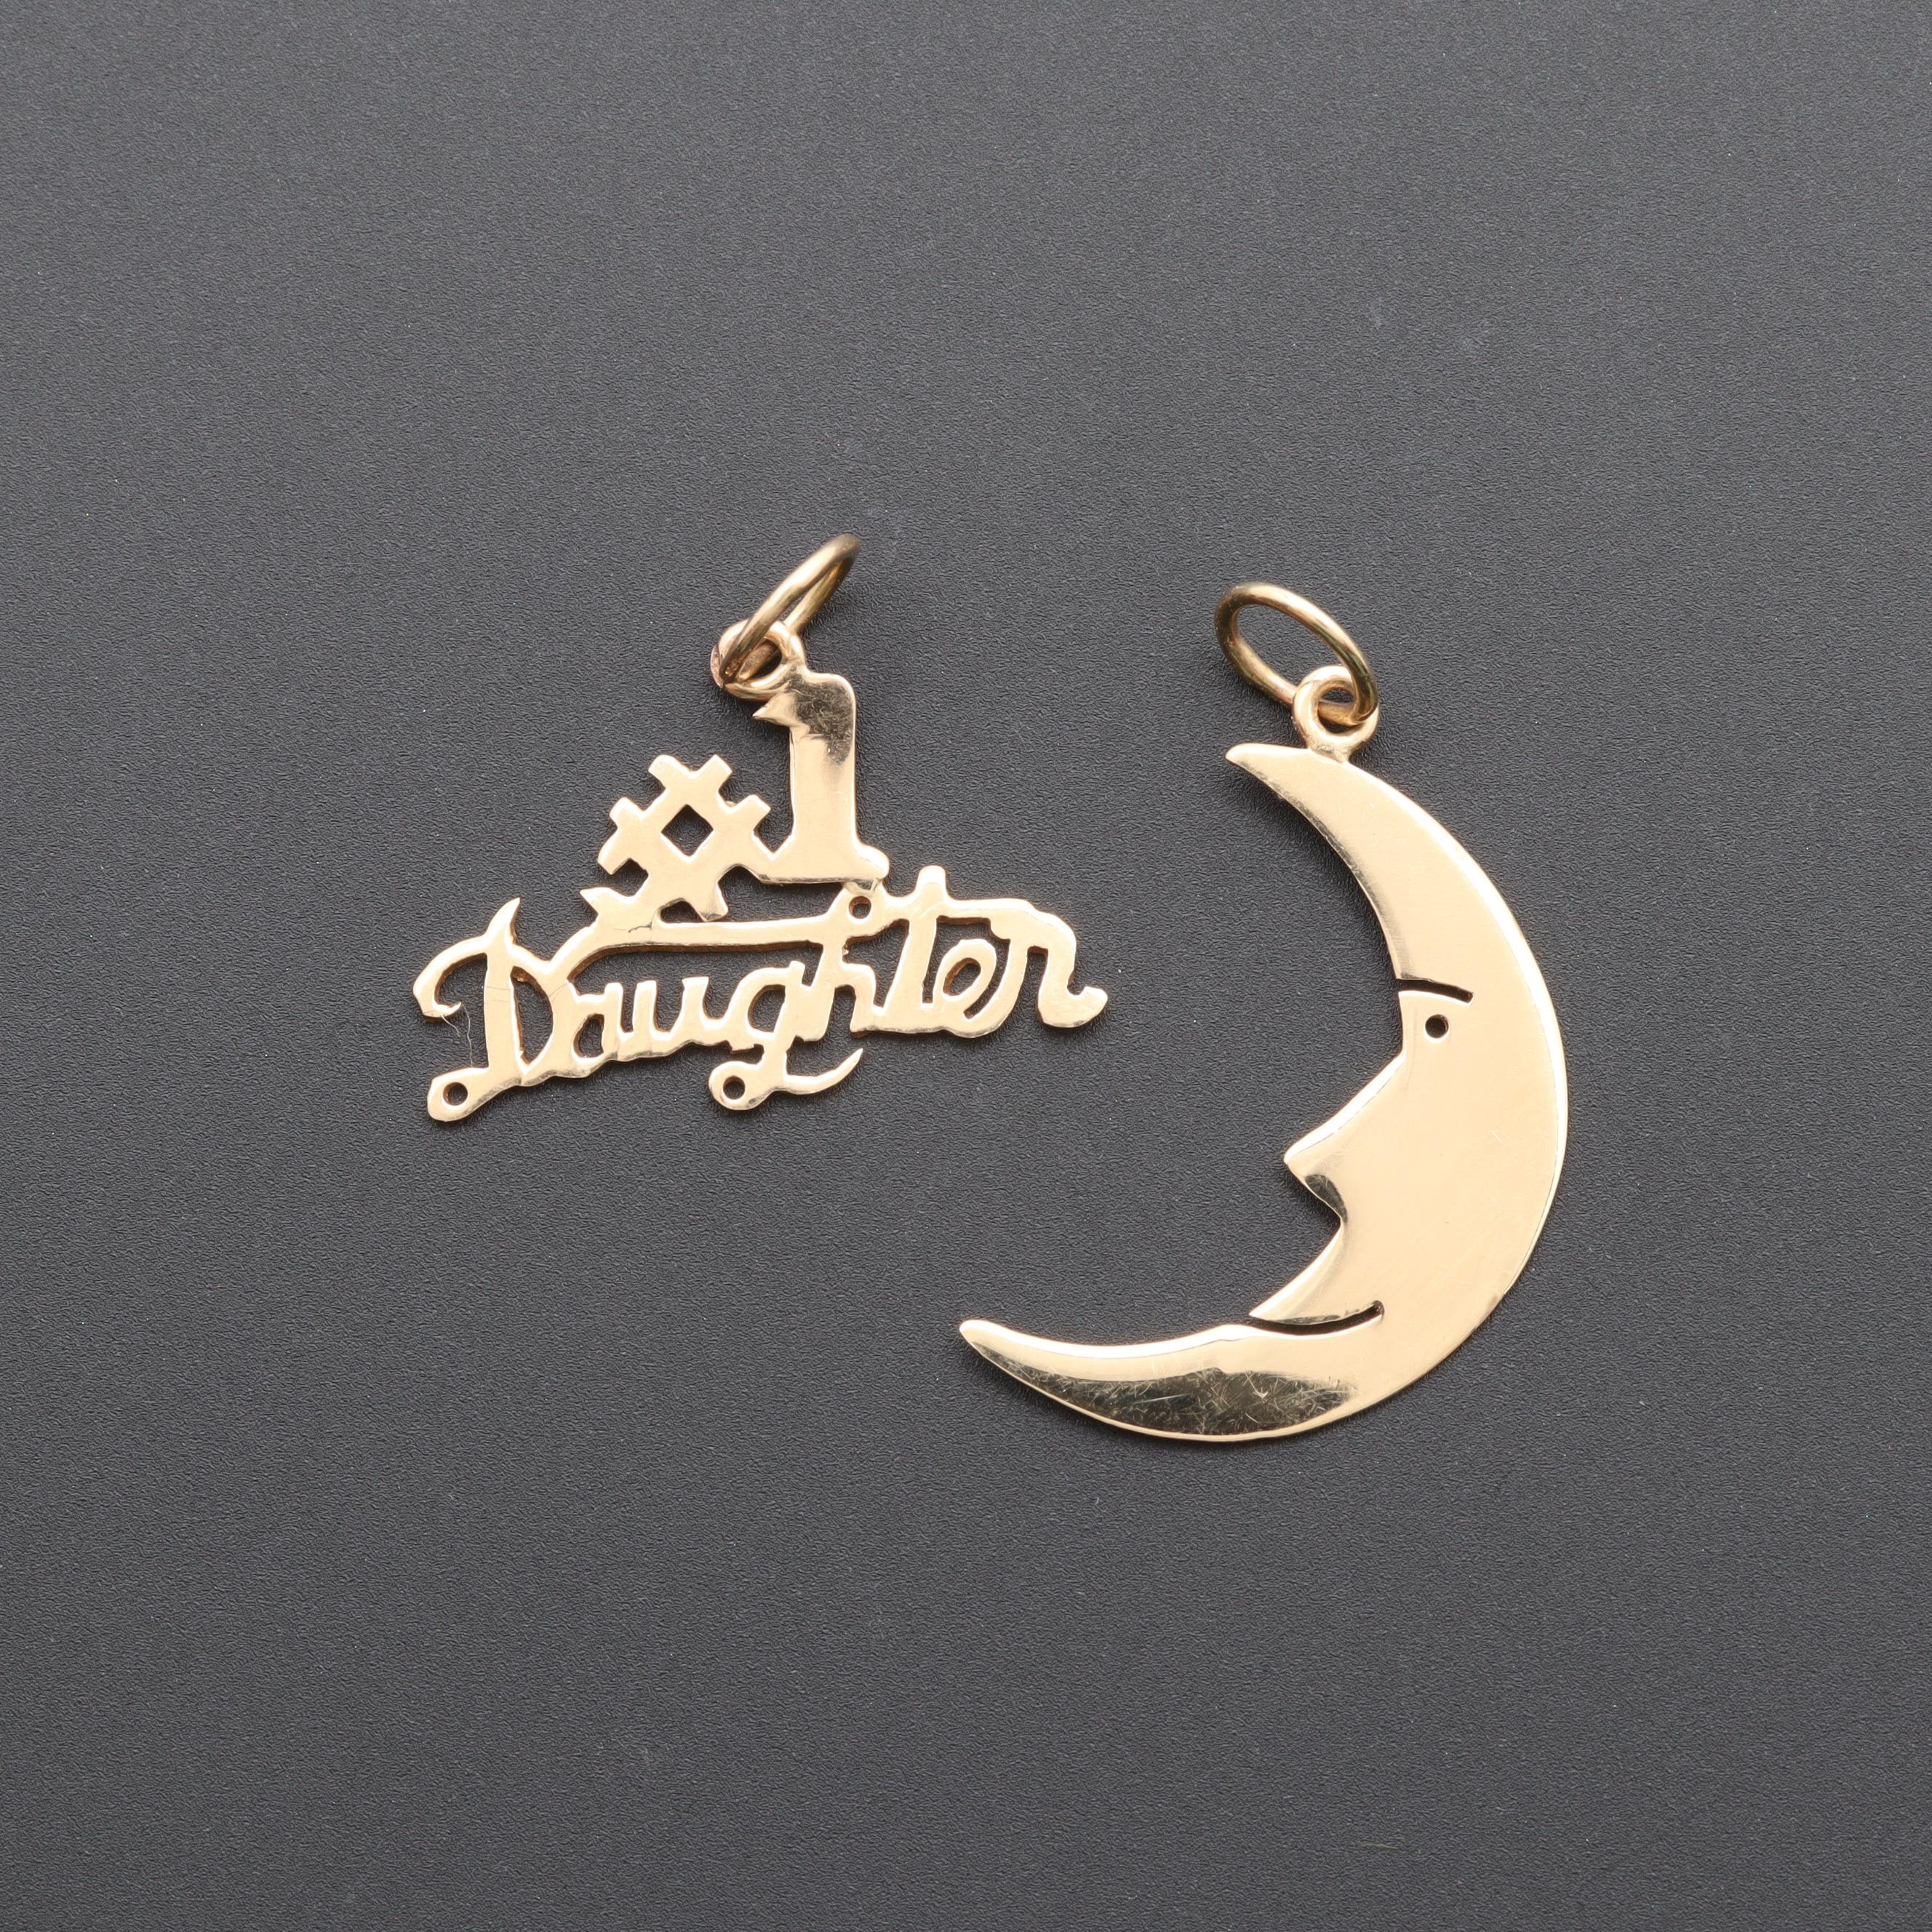 14K Yellow Gold Moon Pendant and #1 Daughter Pendant